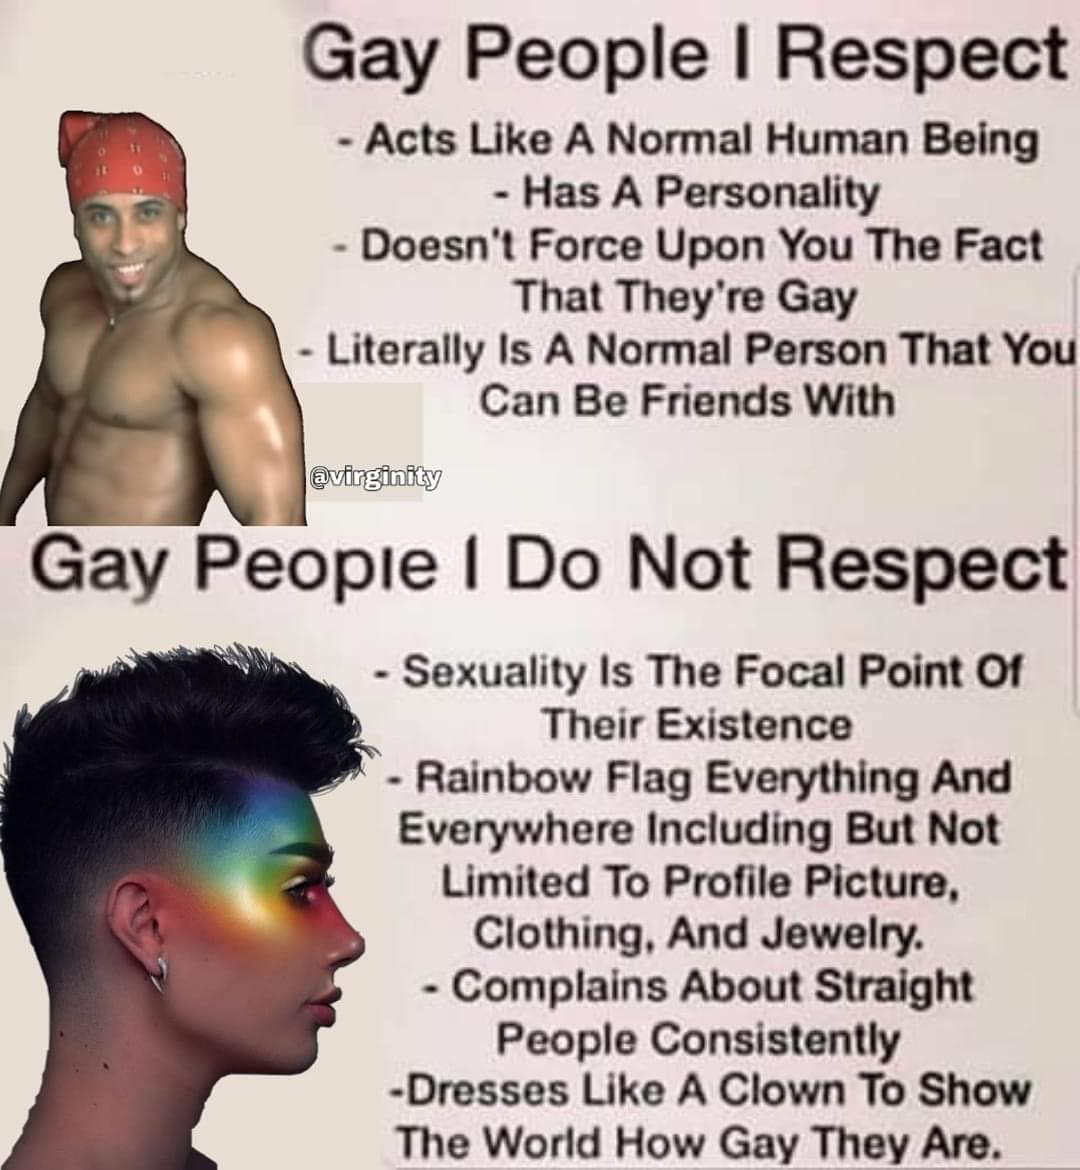 boomer-memes political text: Gay People I Respect - Acts Like A Normal Human Being - Has A Personality - Doesn't Force Upon You The Fact That They're Gay - Literally Is A Normal Person That You Can Be Friends With @virginity Gay People I Do Not Respect - Sexuality Is The Focal Point Of Their Existence - Rainbow Flag Everything And Everywhere Including But Not Limited To Profile Picture, Clothing. And Jewelry. - Complains About Straight People Consistently -Dresses Like A Clown To Show The World How Gay They Are.